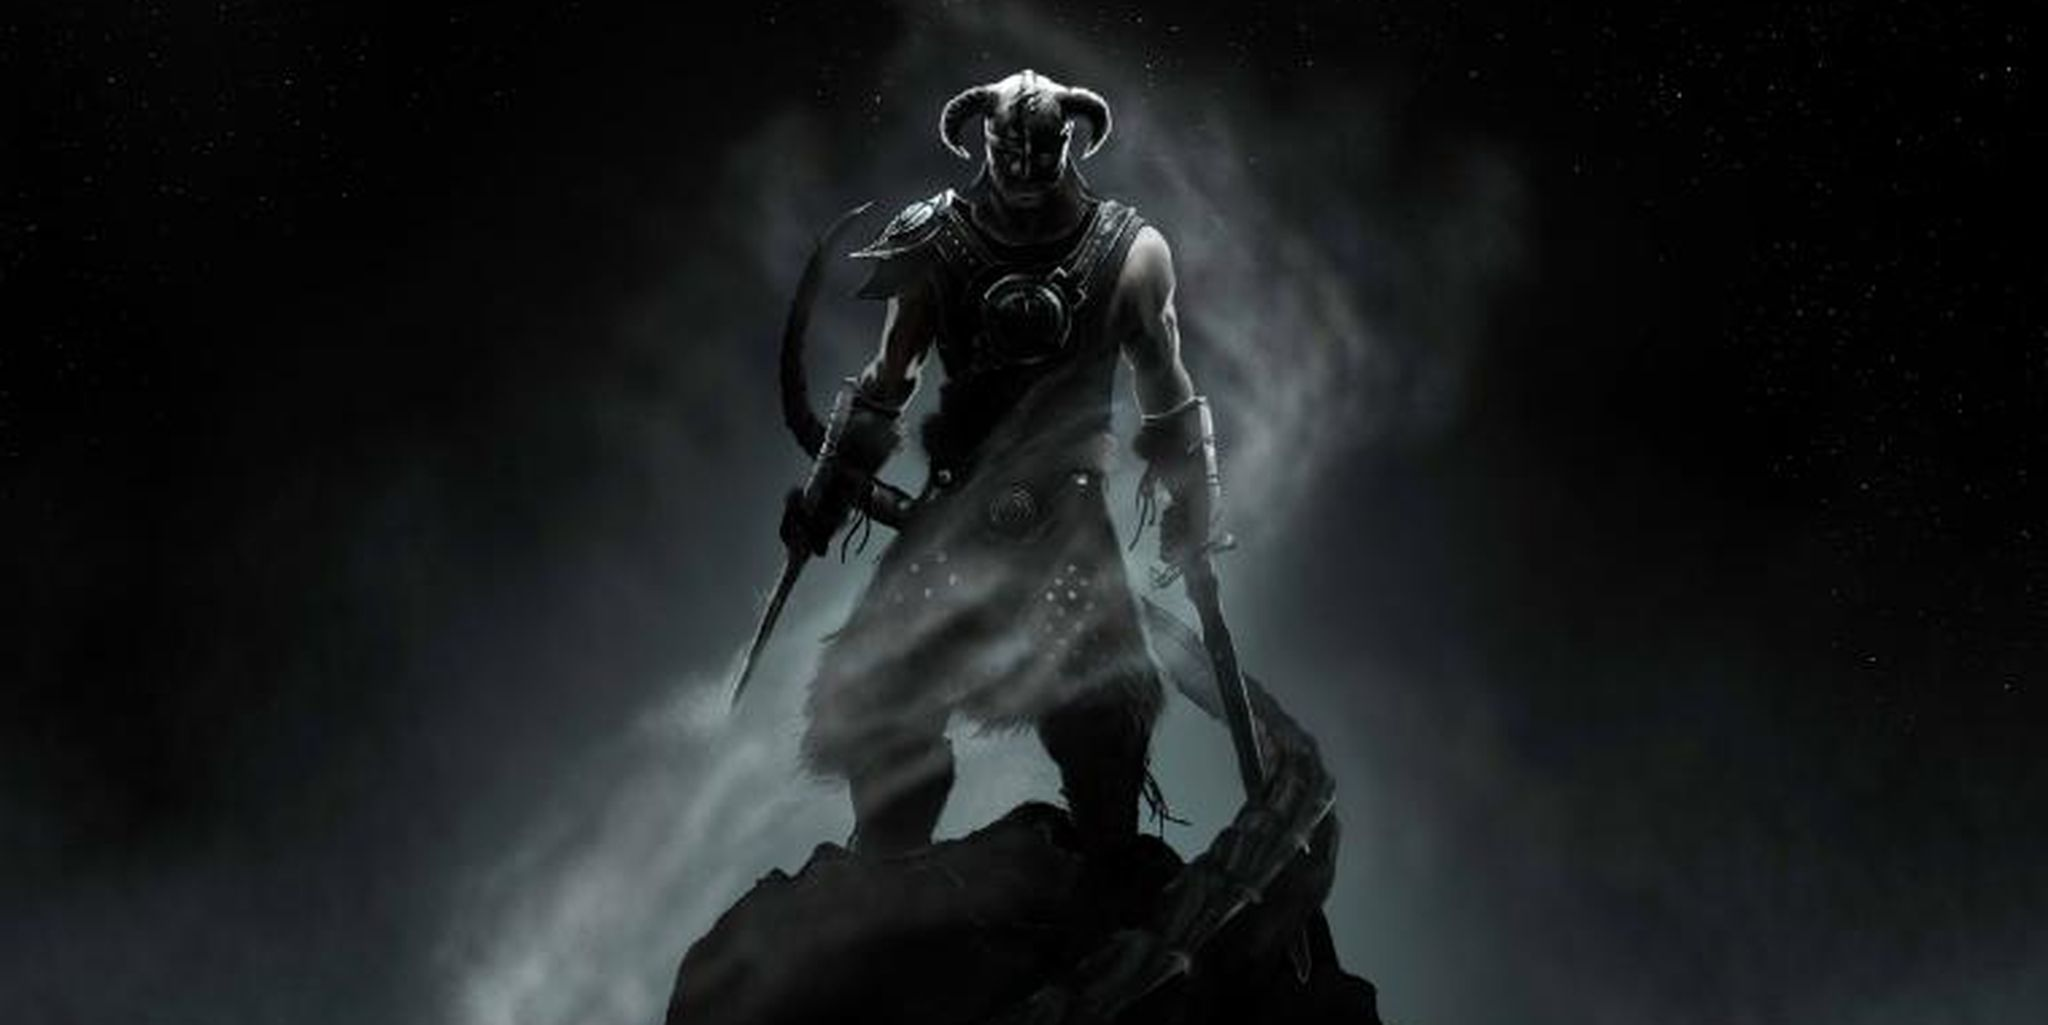 Add Skyrim Special Edition to your game library for $25